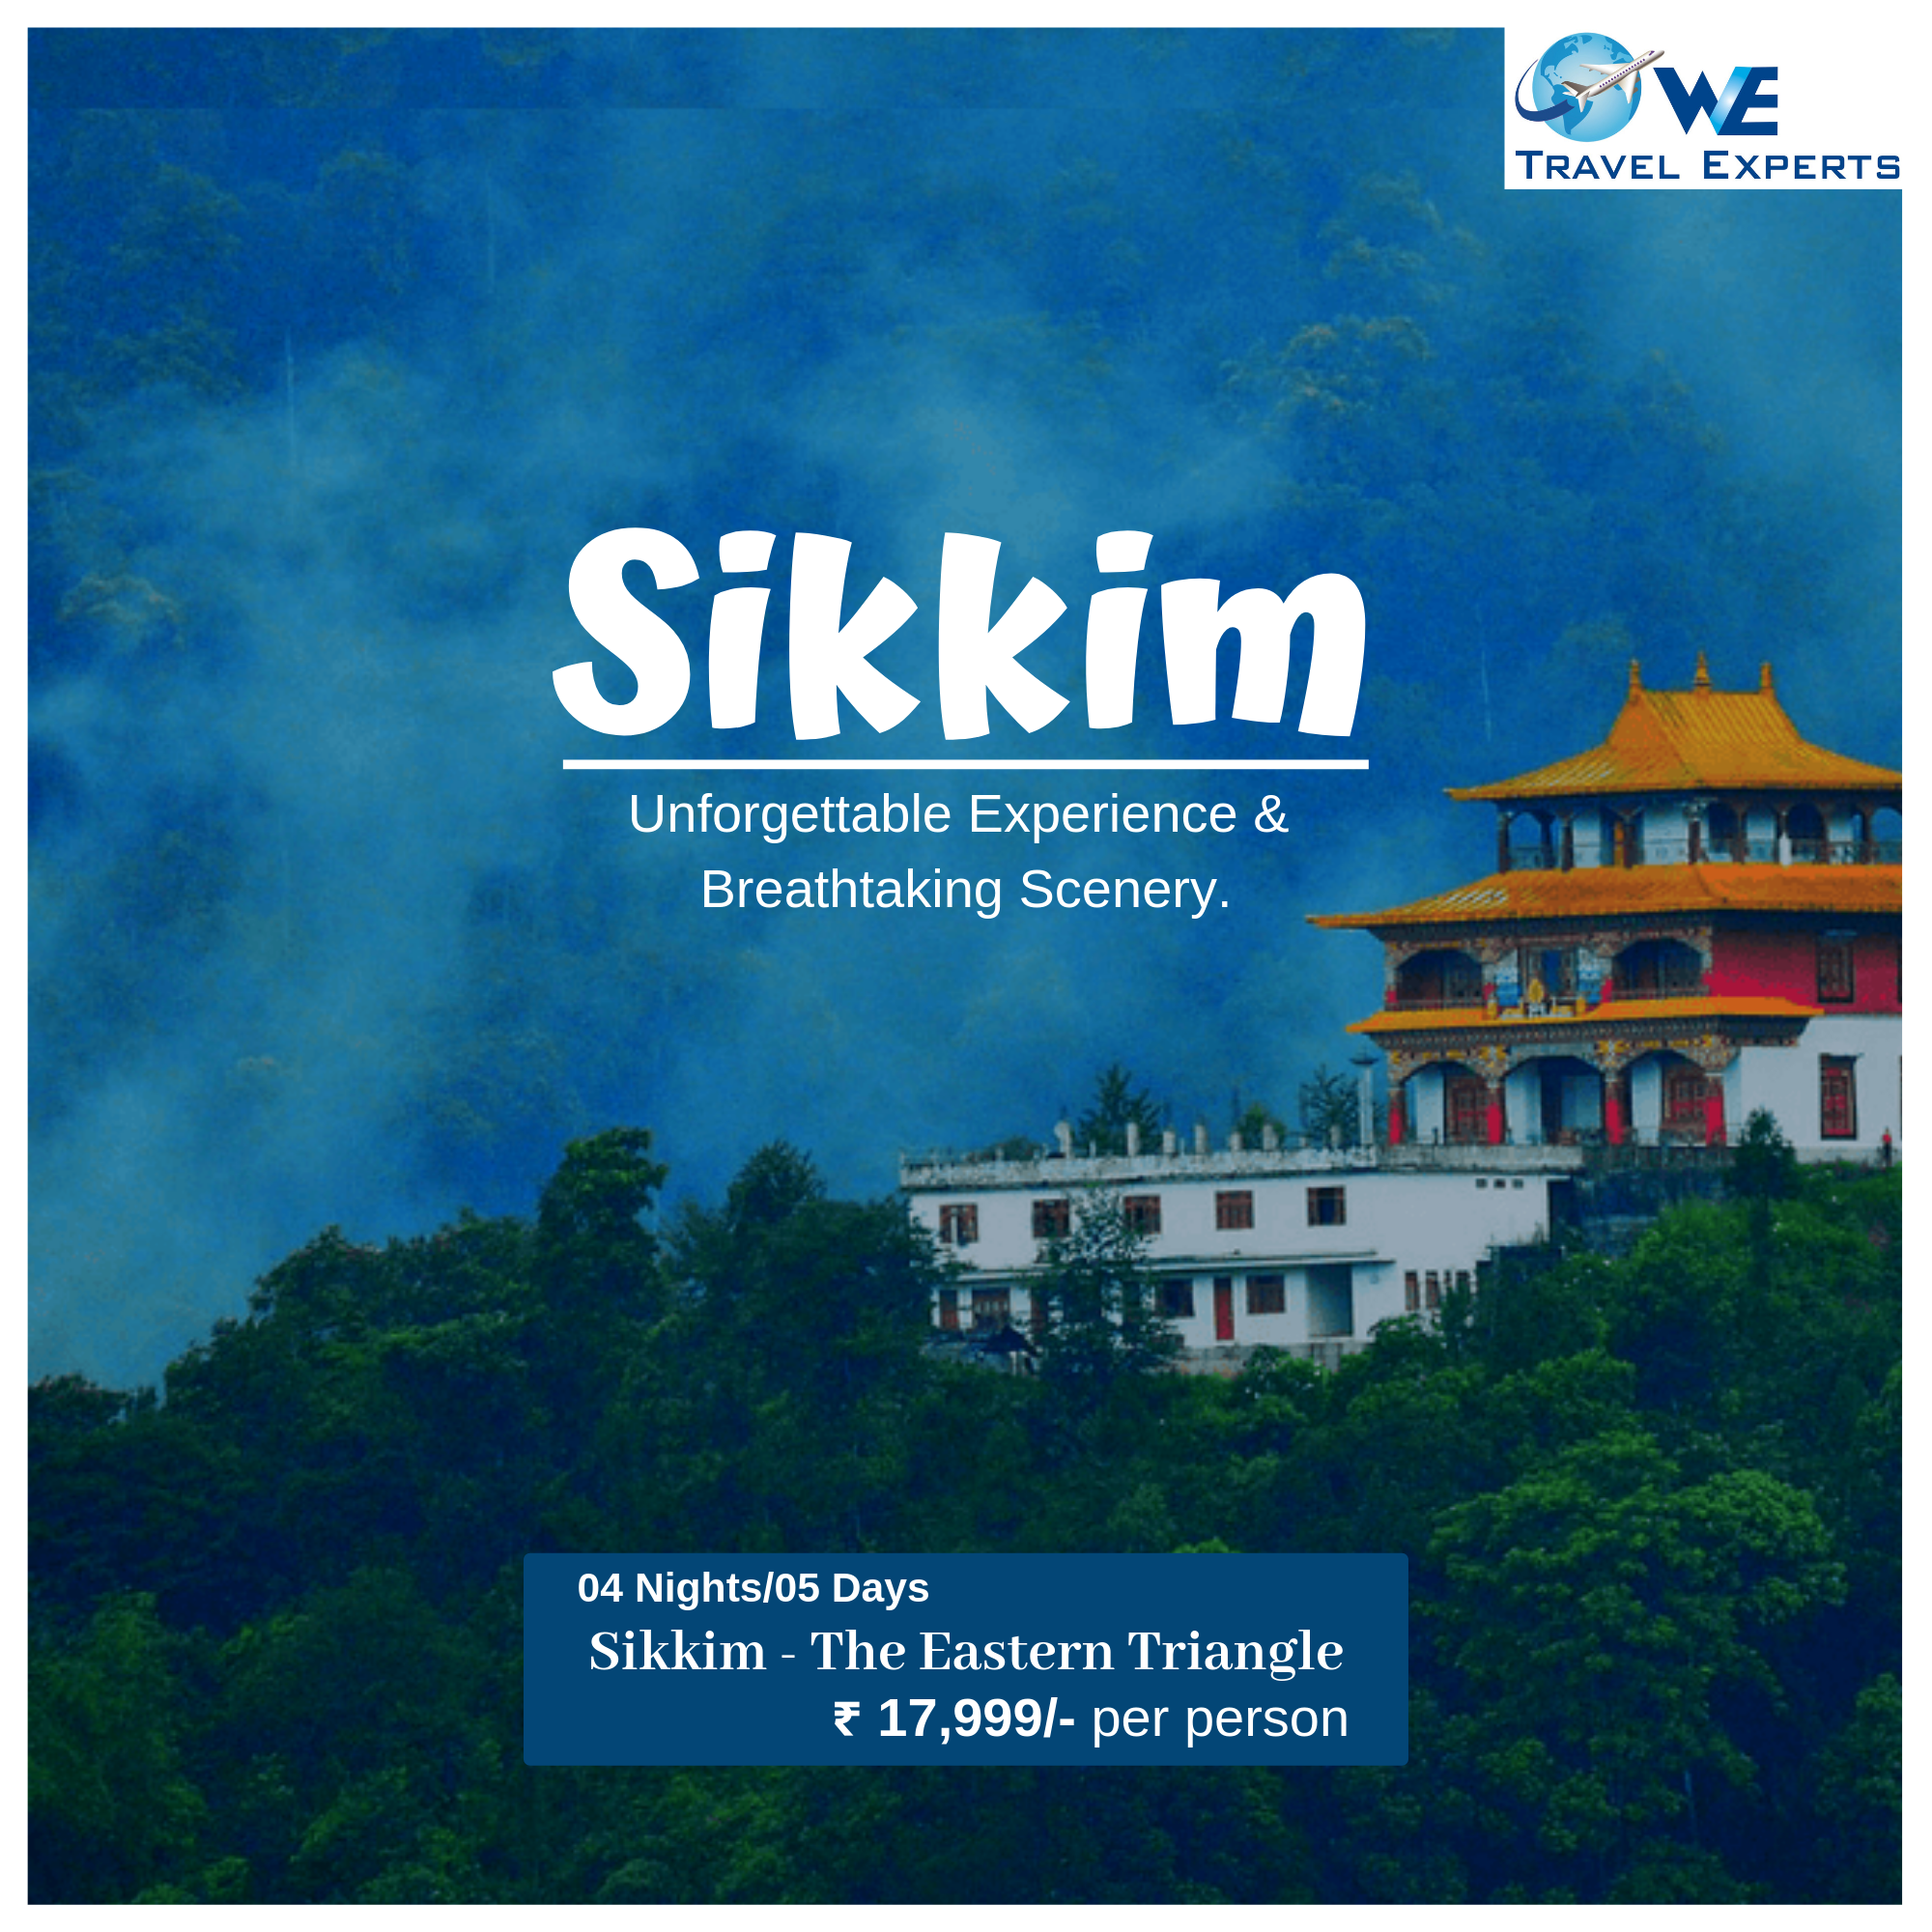 Get attractive offers on Sikkim travel packages at World